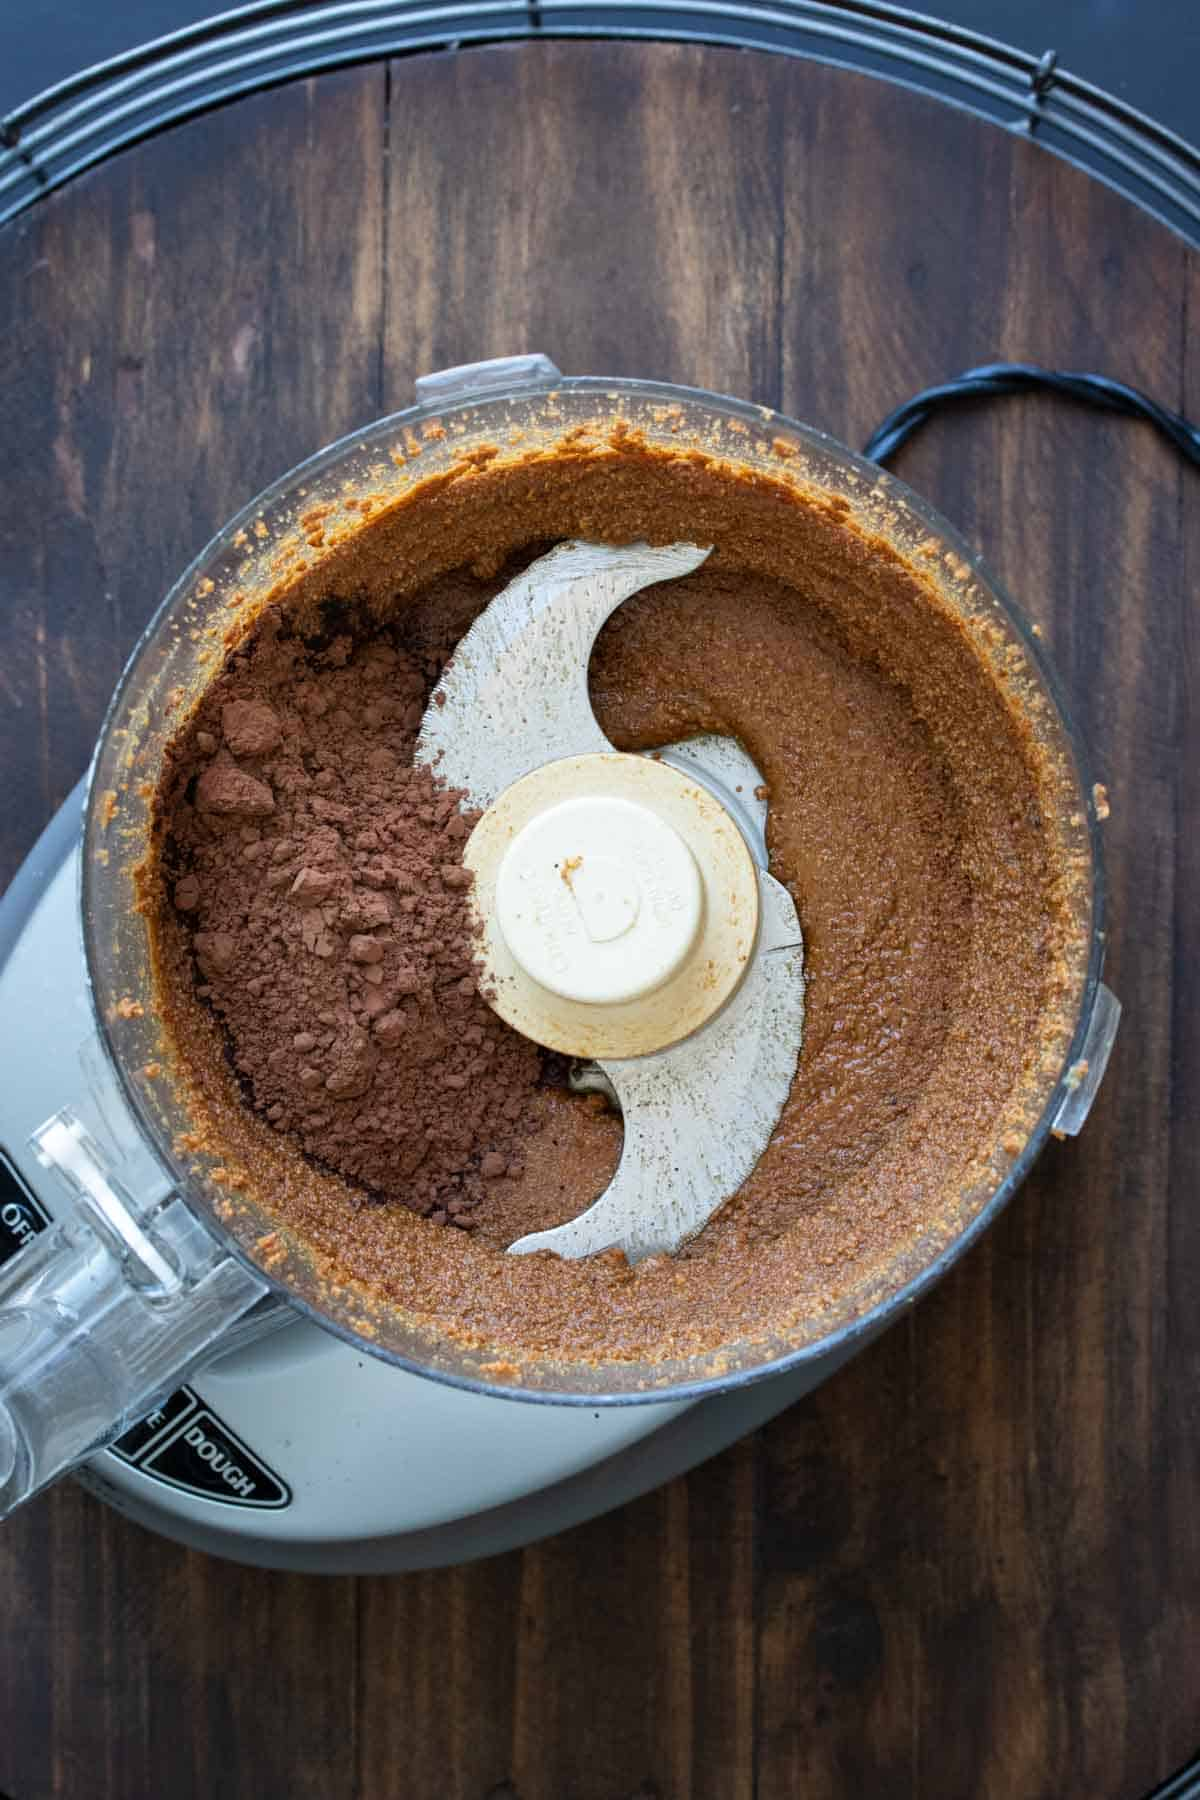 Food processor blending hazelnuts and cocoa powder